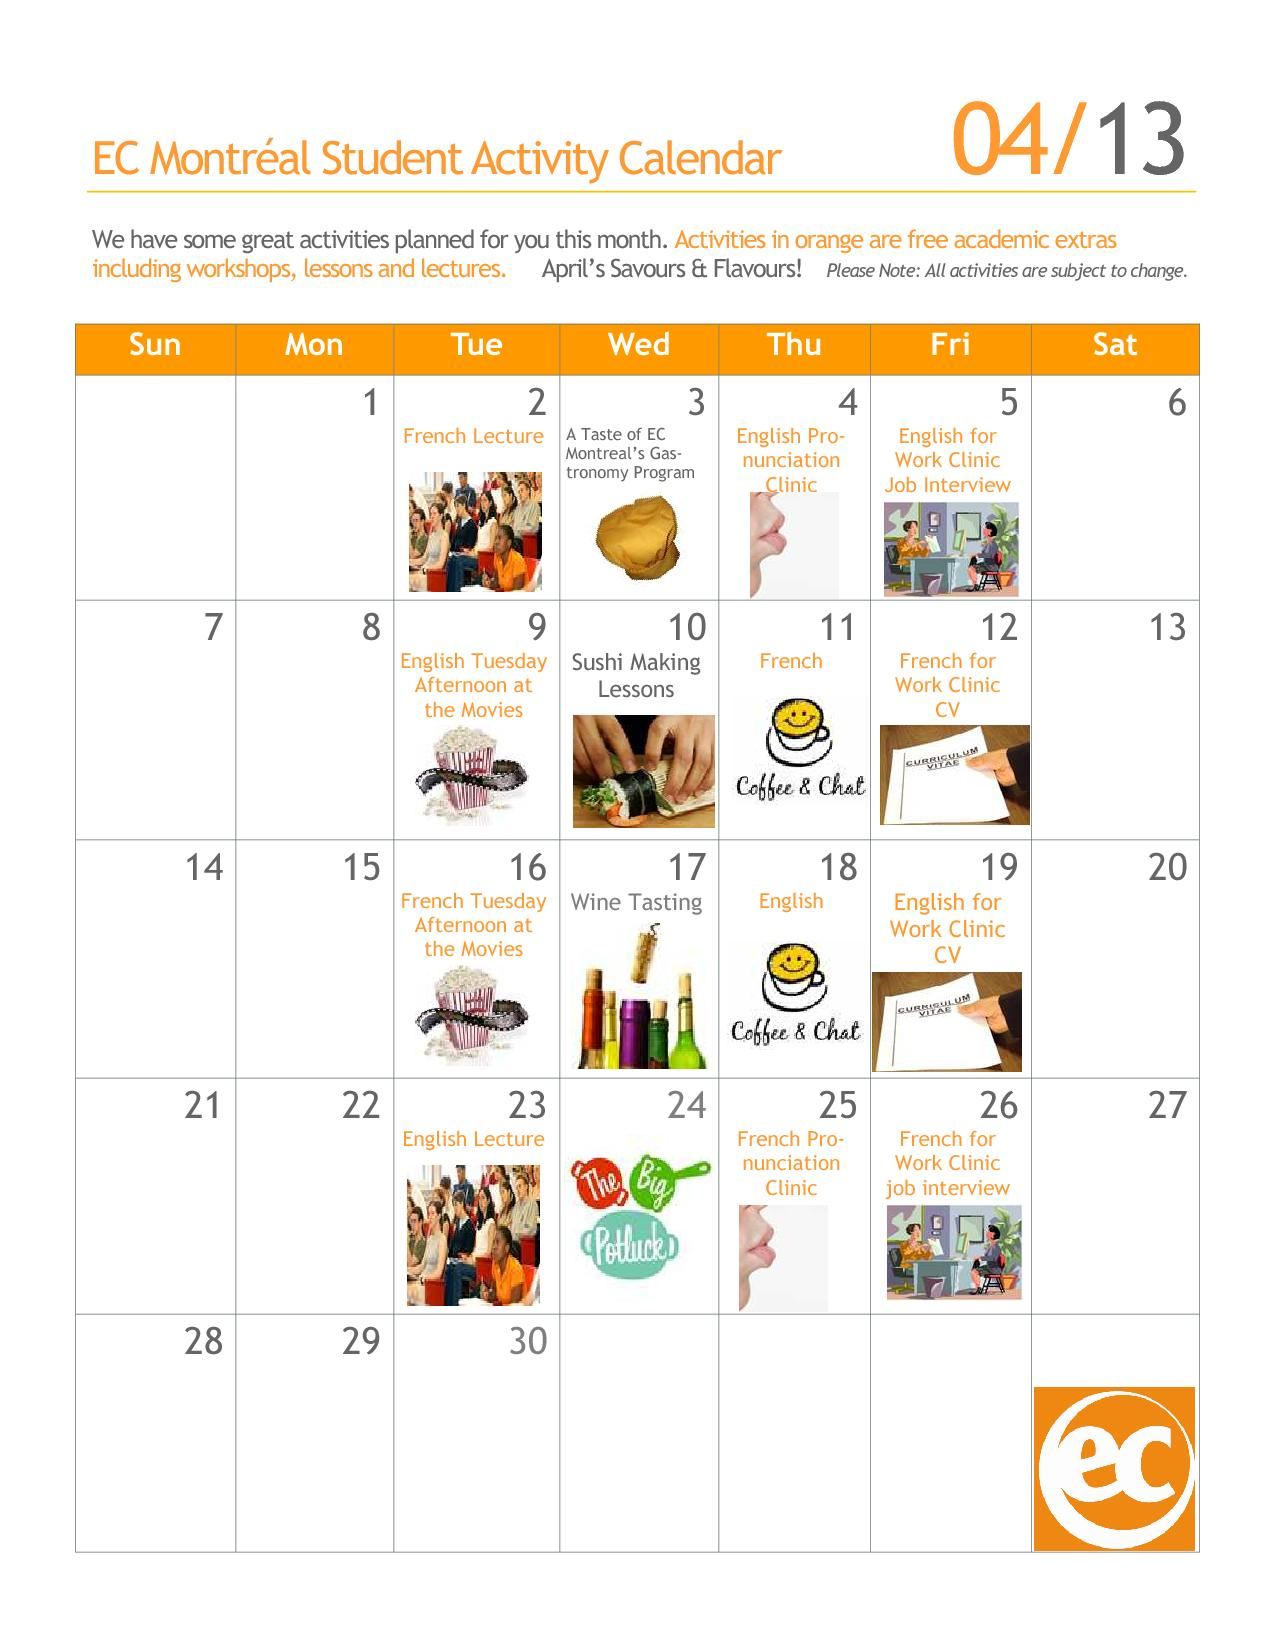 Free Social And Academic Activities Calendar For April At